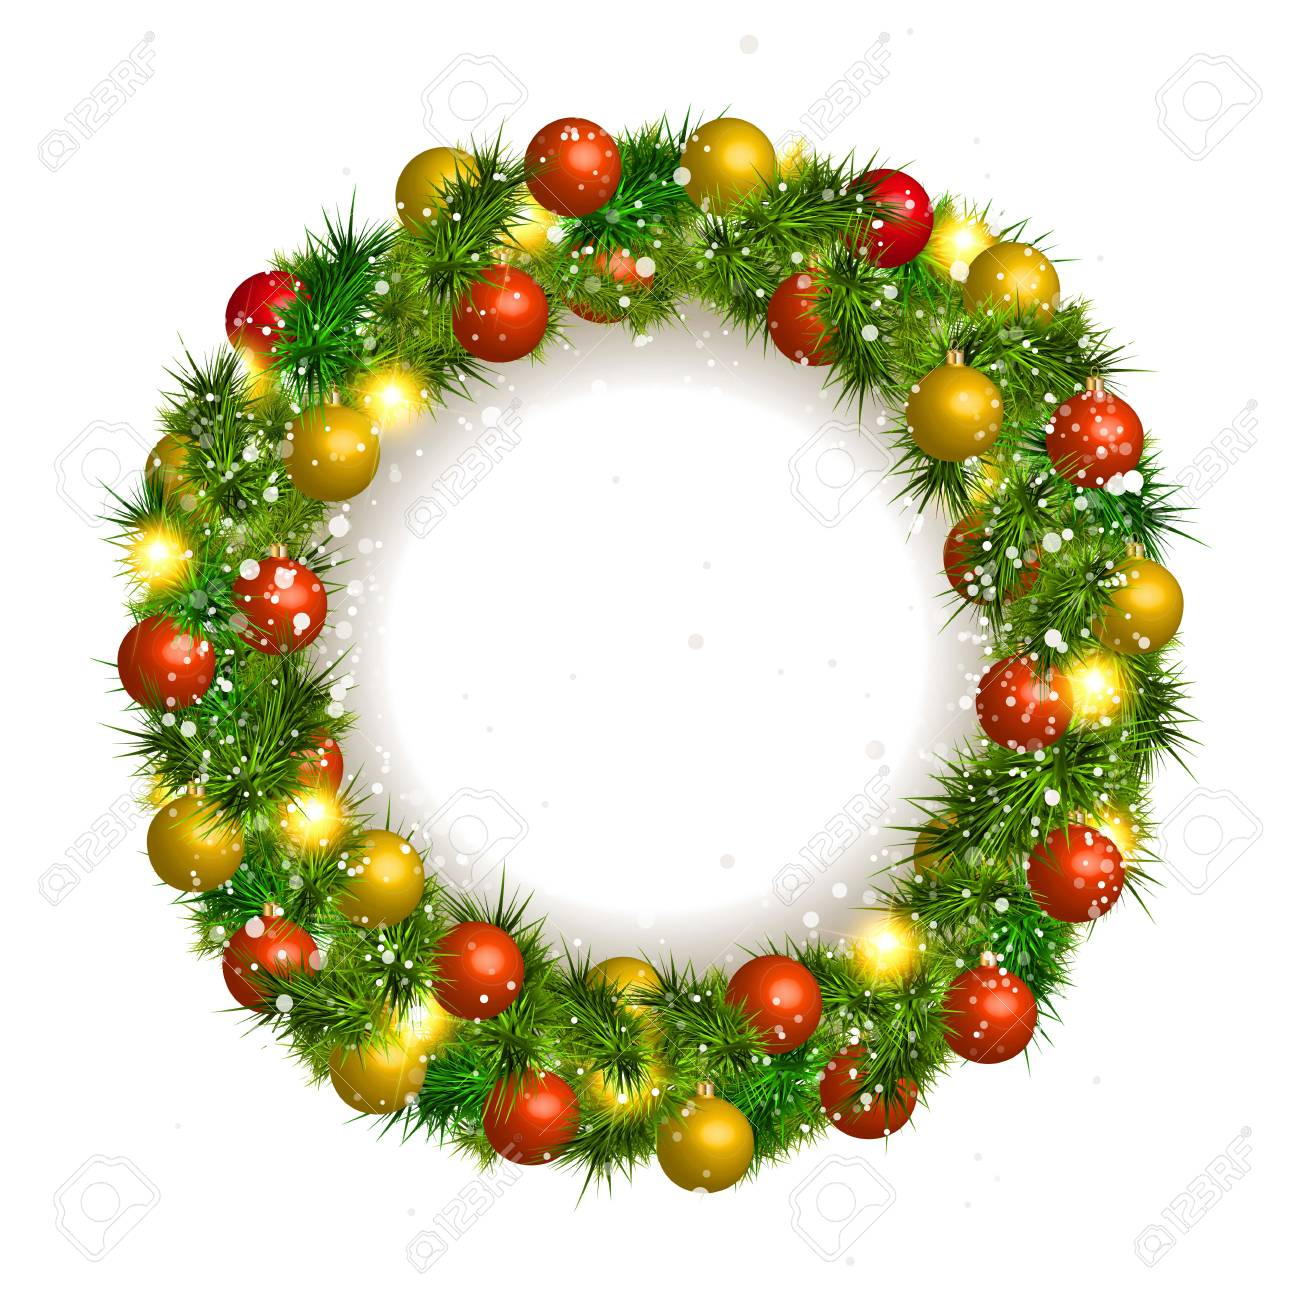 Christmas Wreath Vector Christmas Balls On White Background Royalty ...